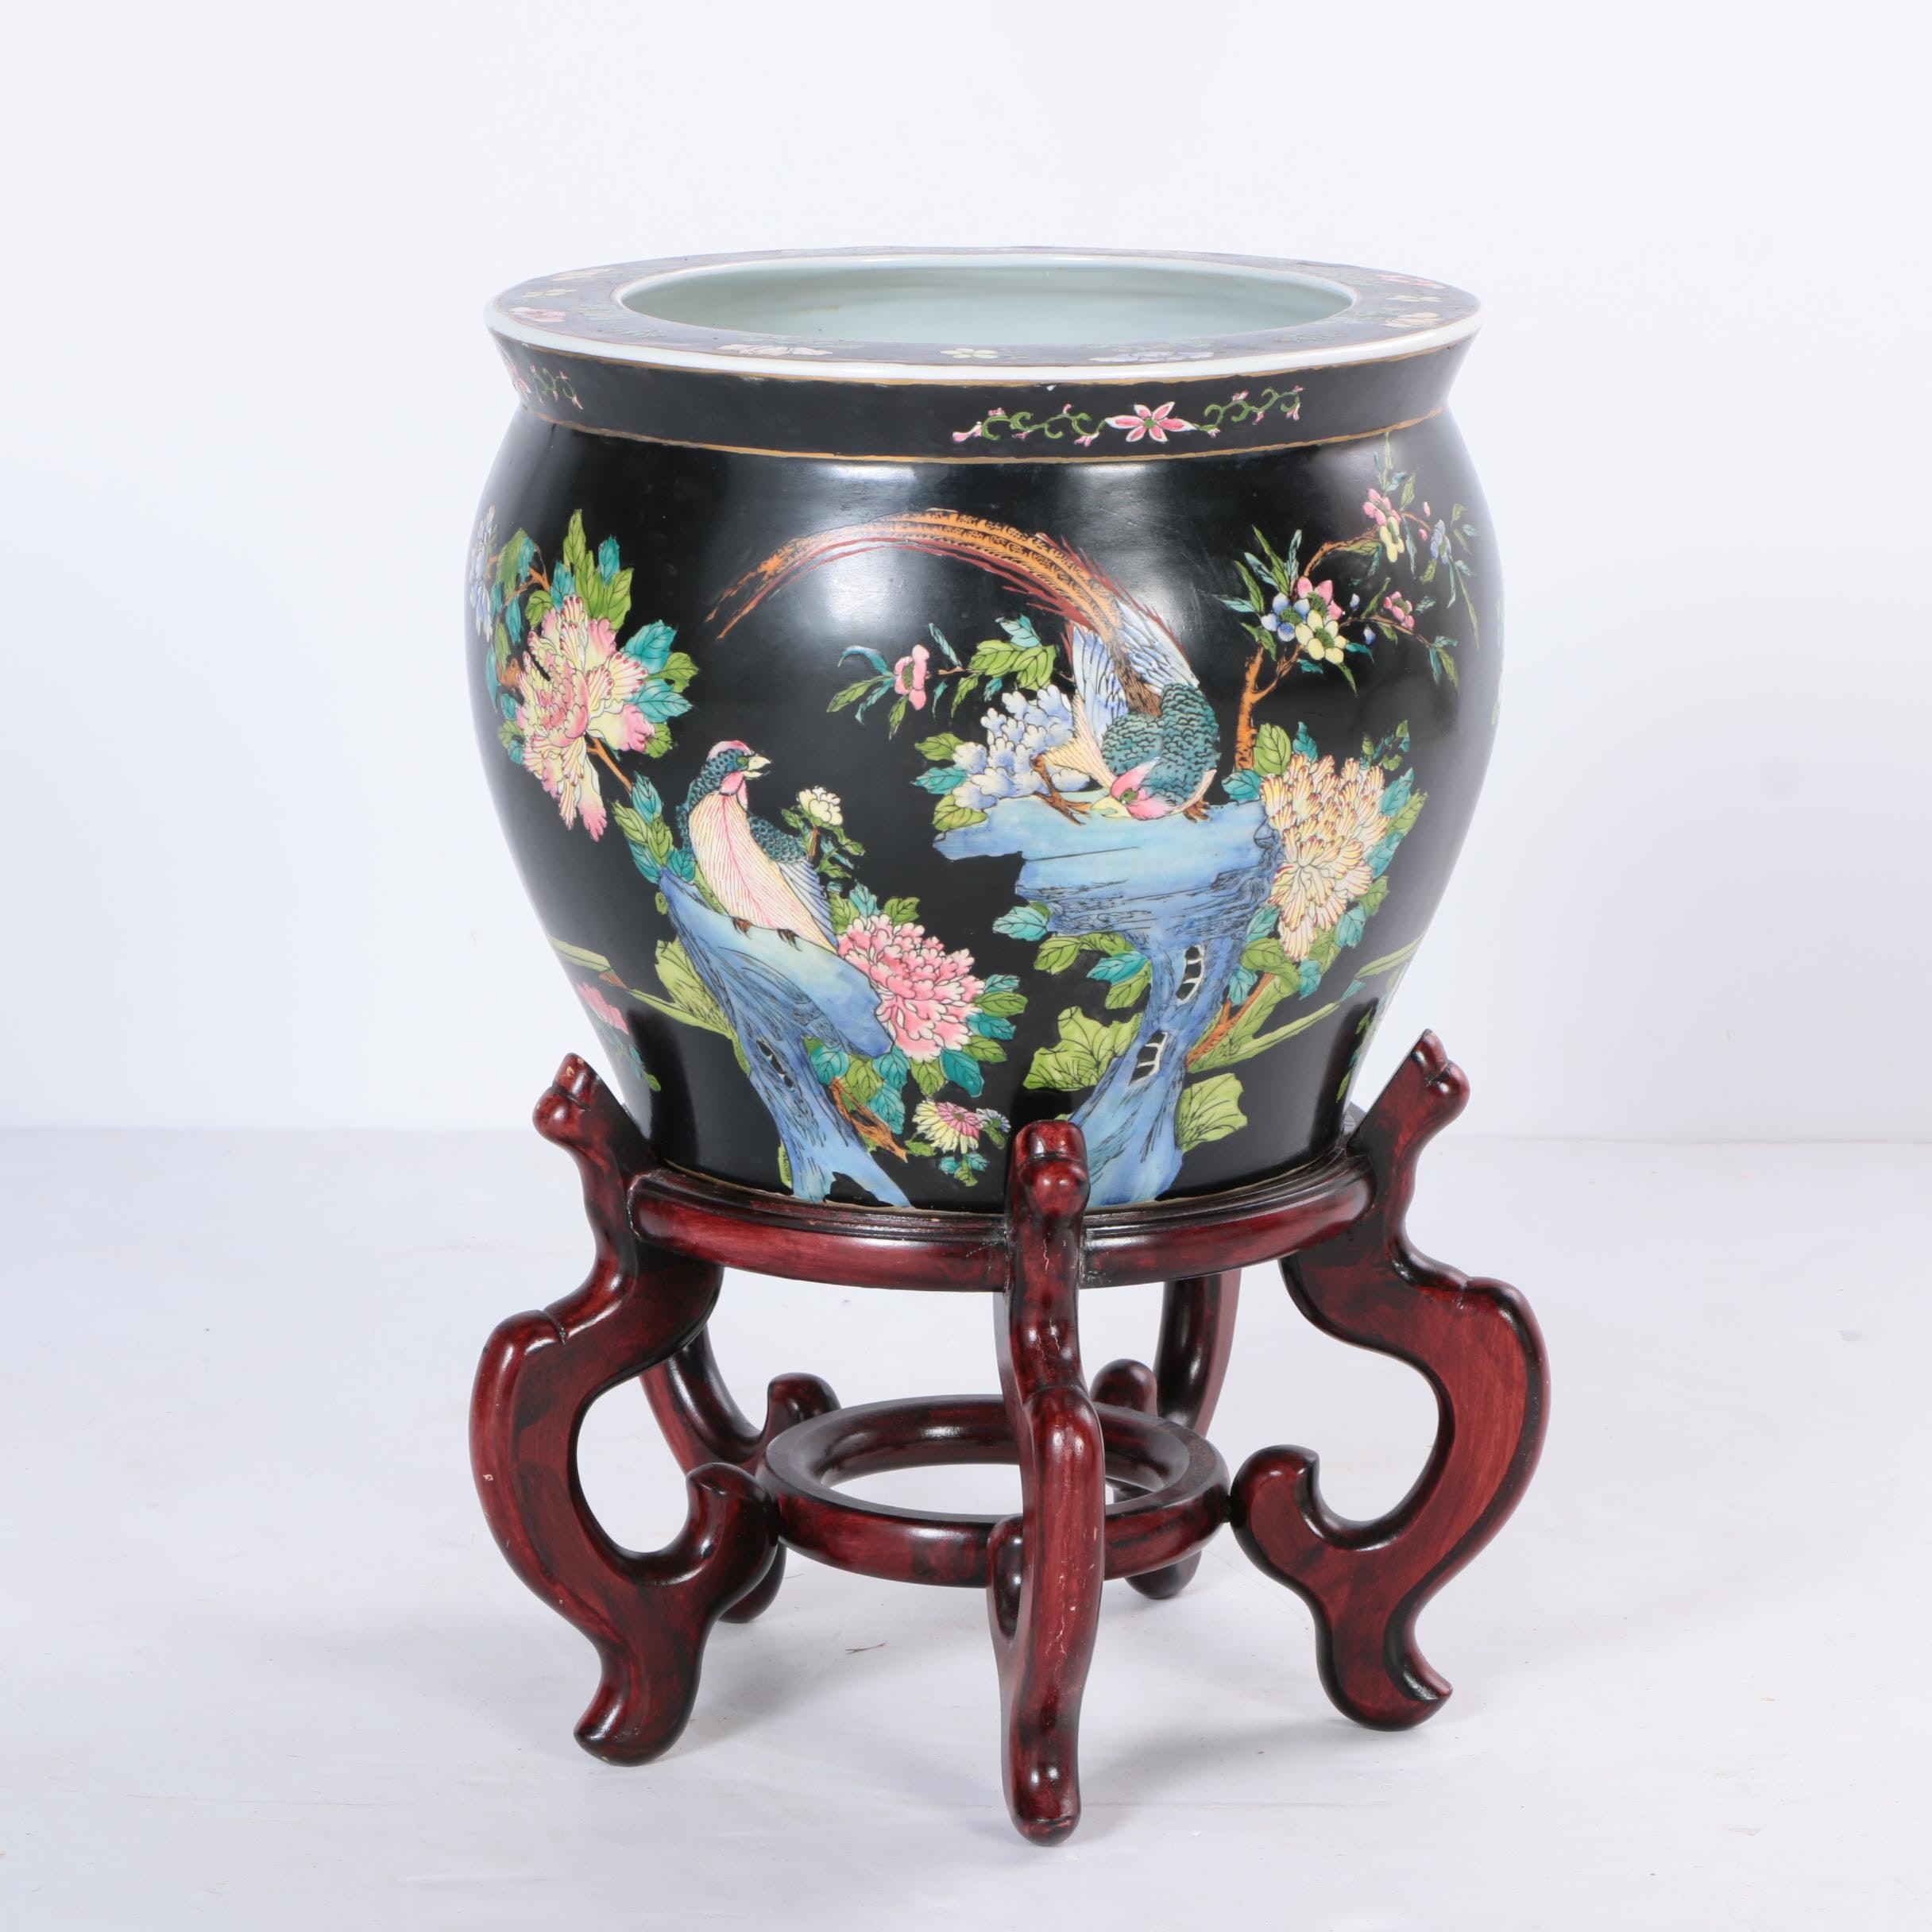 Chinese Porcelain Fish Bowl Planter On Wood Stand